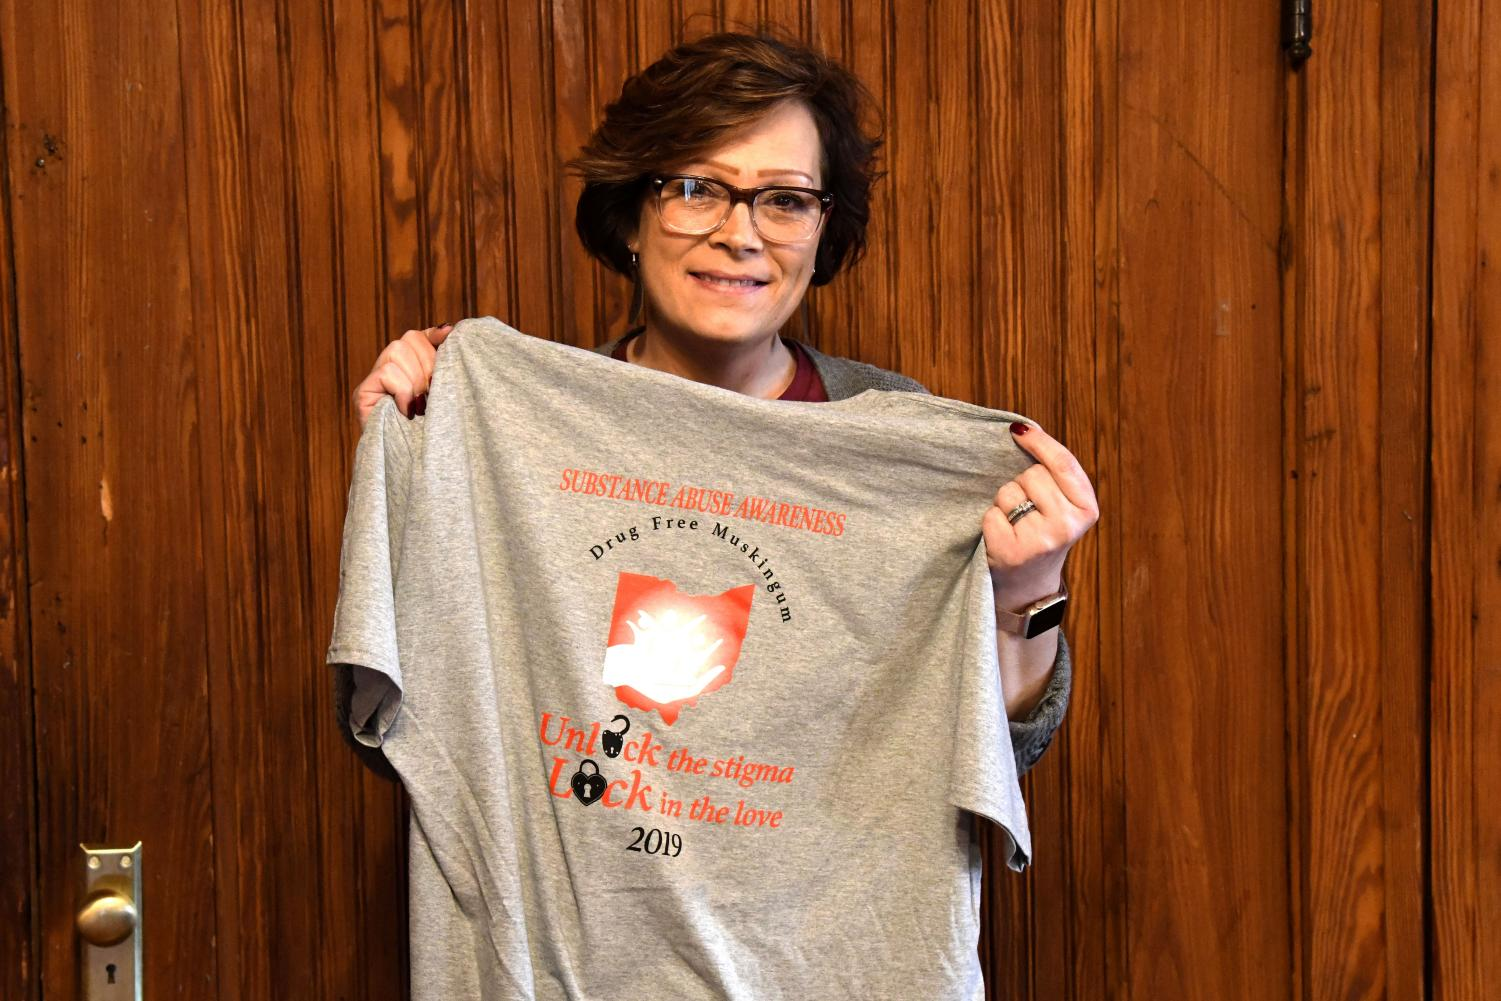 Monica Batteiger, one of the founders of Drug Free Muskingum, holds one of the organization's T-shirts for the Celebration of Life Walk.